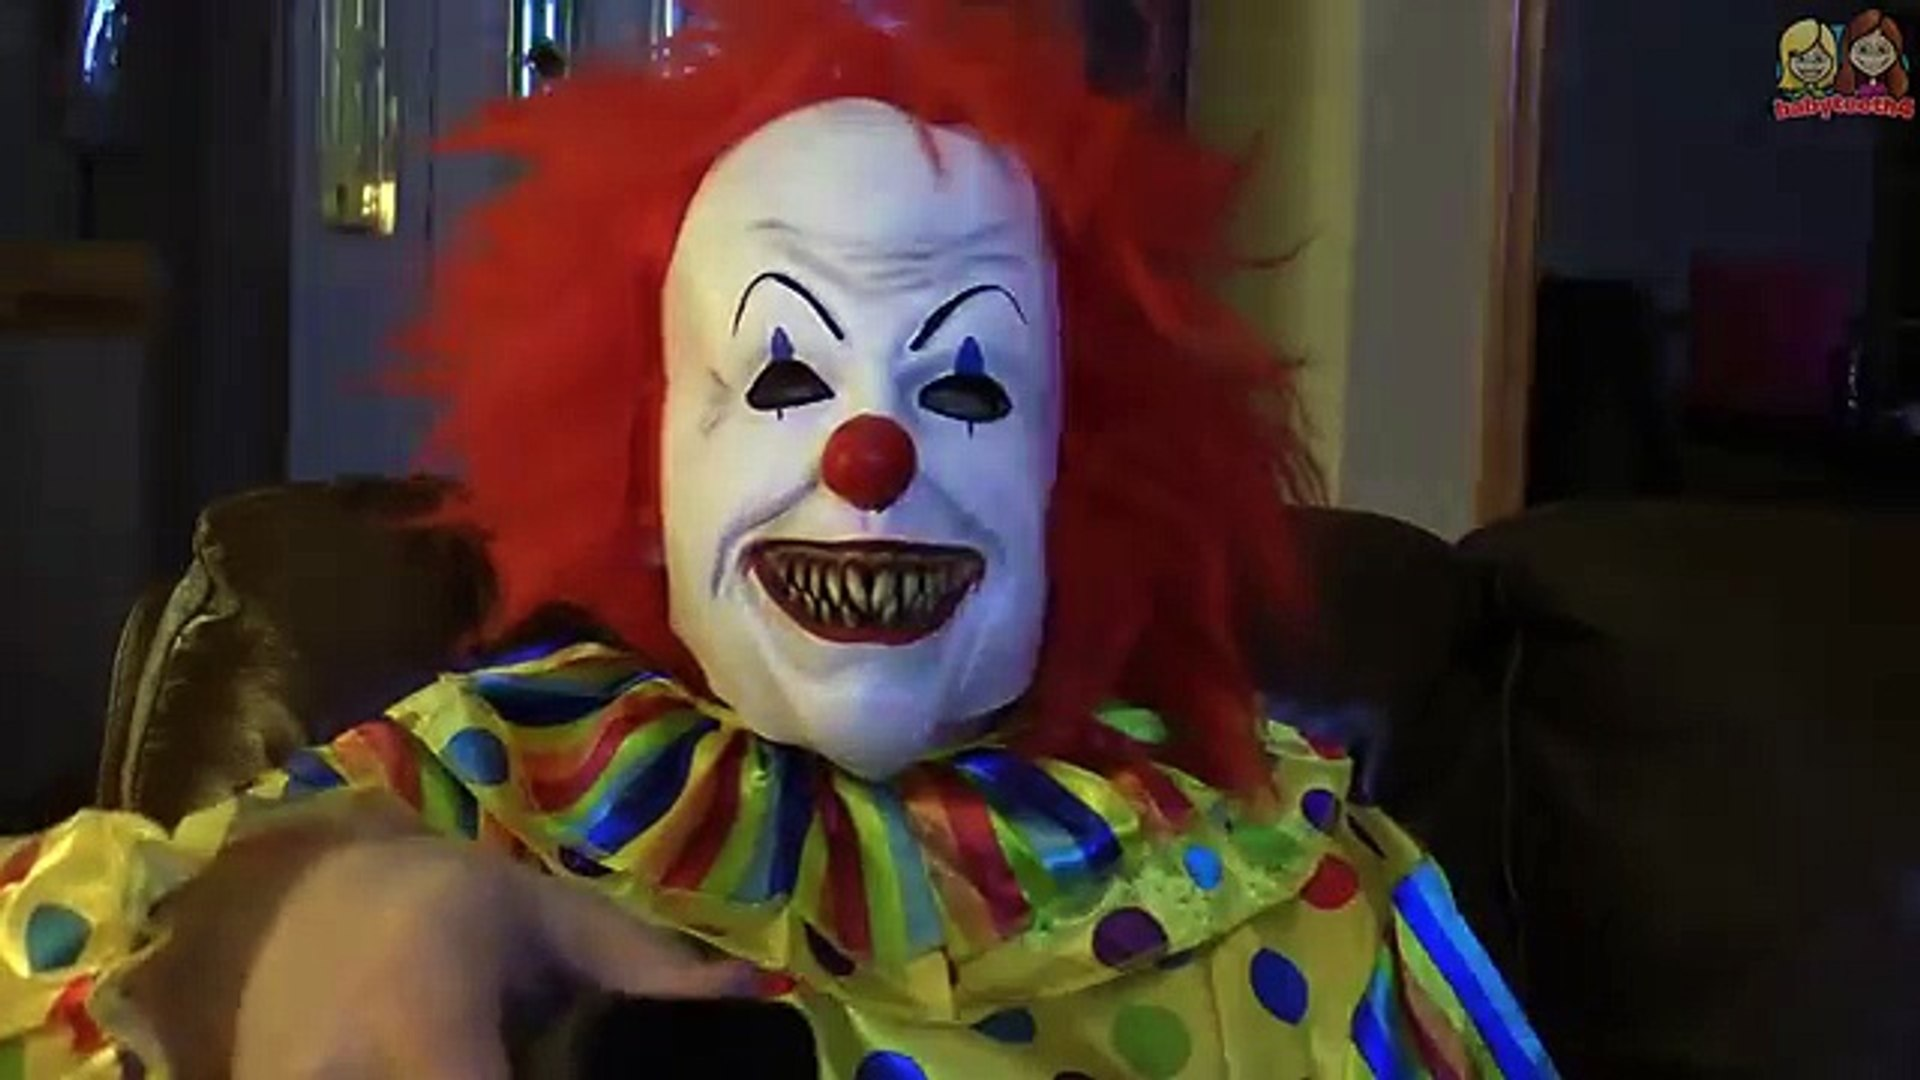 Creepy Clown Mailed Itself in a Box to Our House! Kids scared by Killer Clown! Babyteeth4